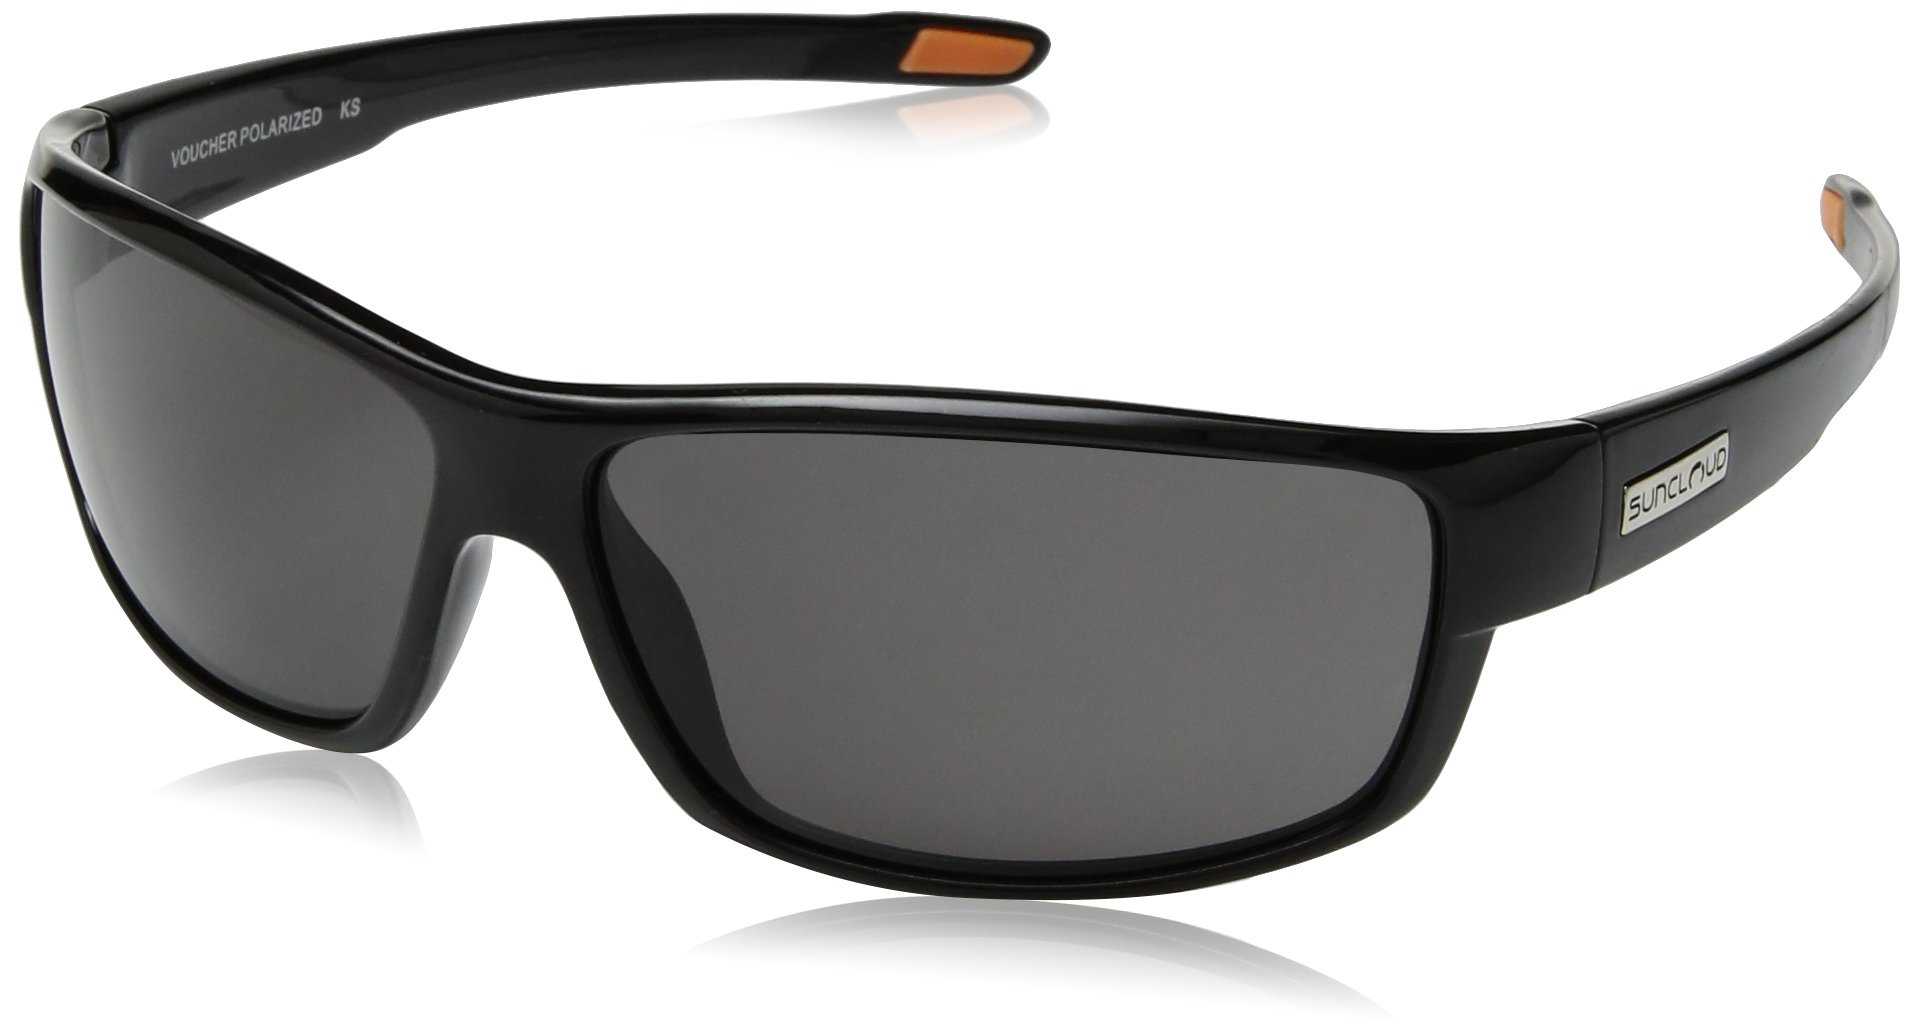 Suncloud Optics Voucher Injected Frames Polarized Outdoor Sunglasses - Black/Gray by Suncloud